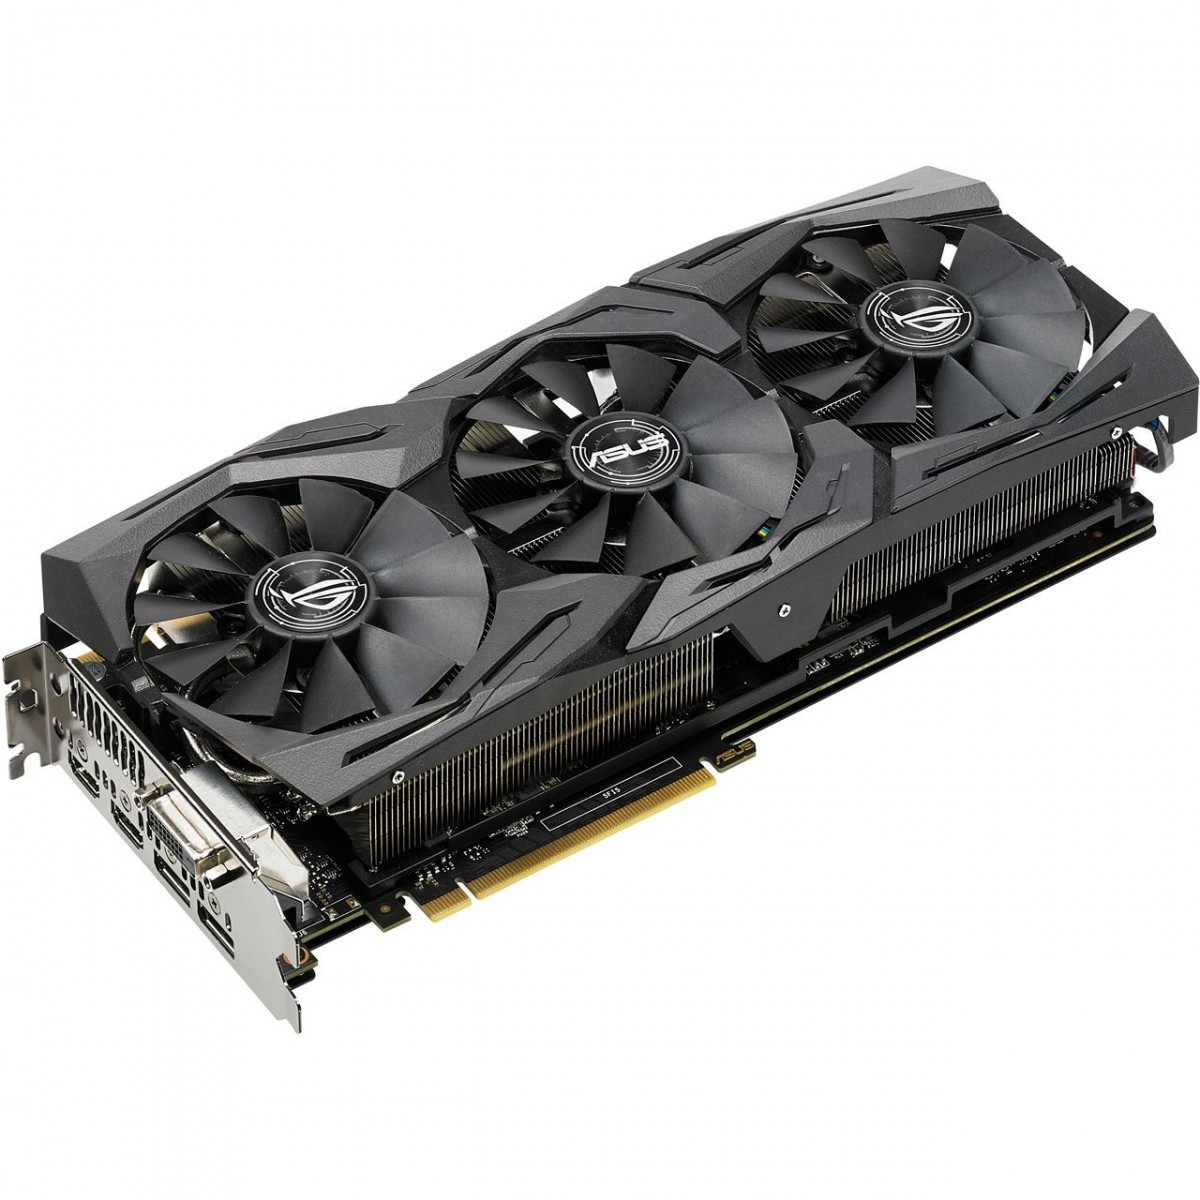 ASUS GTX1080 Strix 8GB DDR-5X  Graphics Card